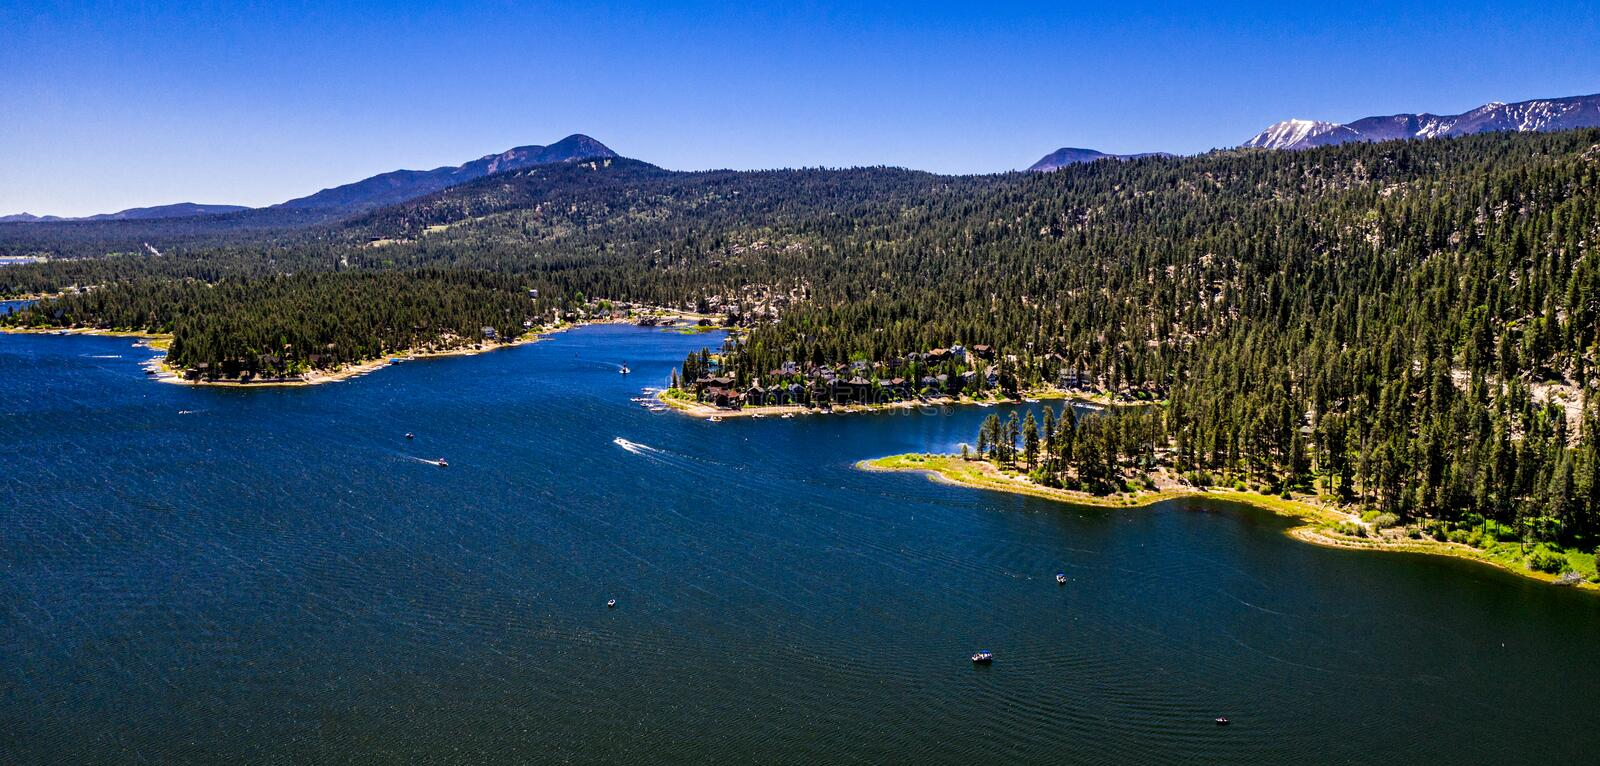 Aerial, Drone Landscape Over Big Bear Lake, California. Aerial, drone panorama of resort Big Bear Lake, California in the San Bernardino Mountains with clear royalty free stock images